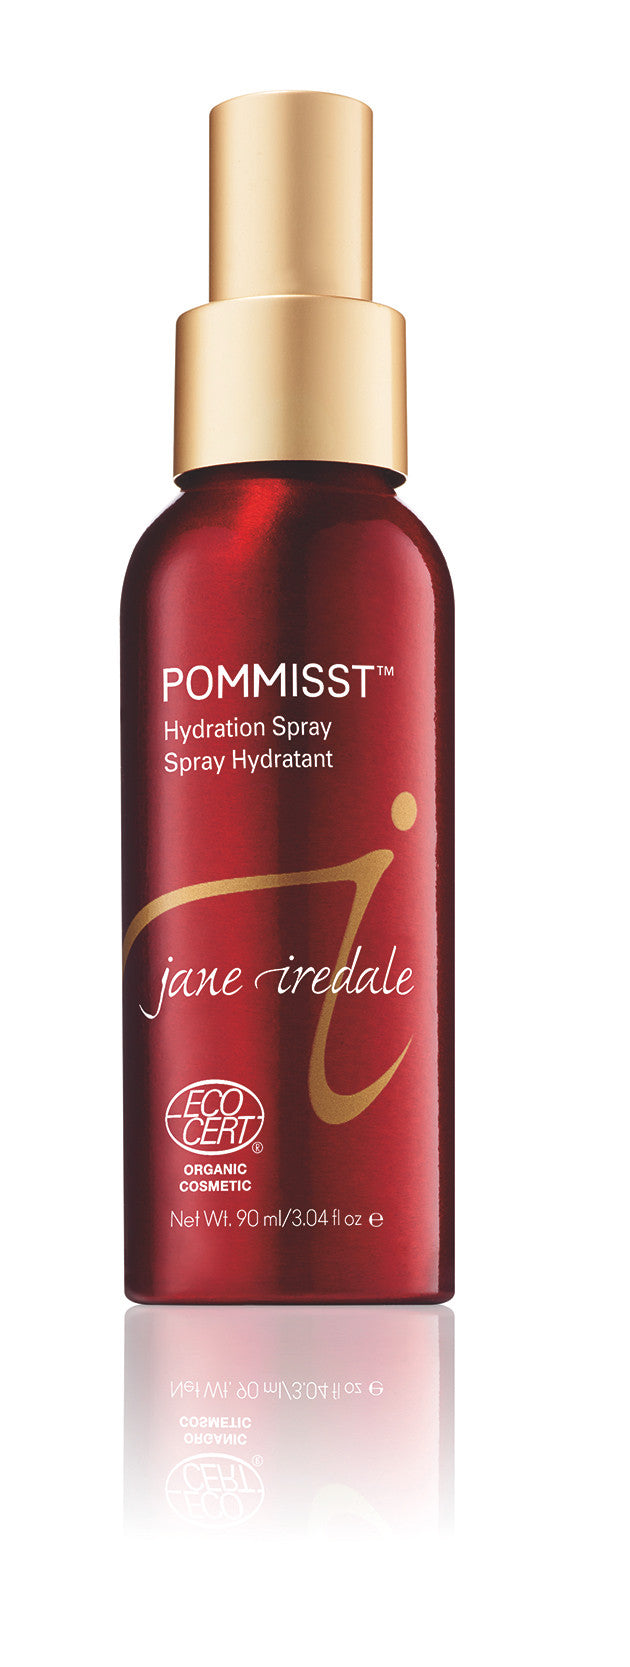 POMMISST Hydration Spray 90ml